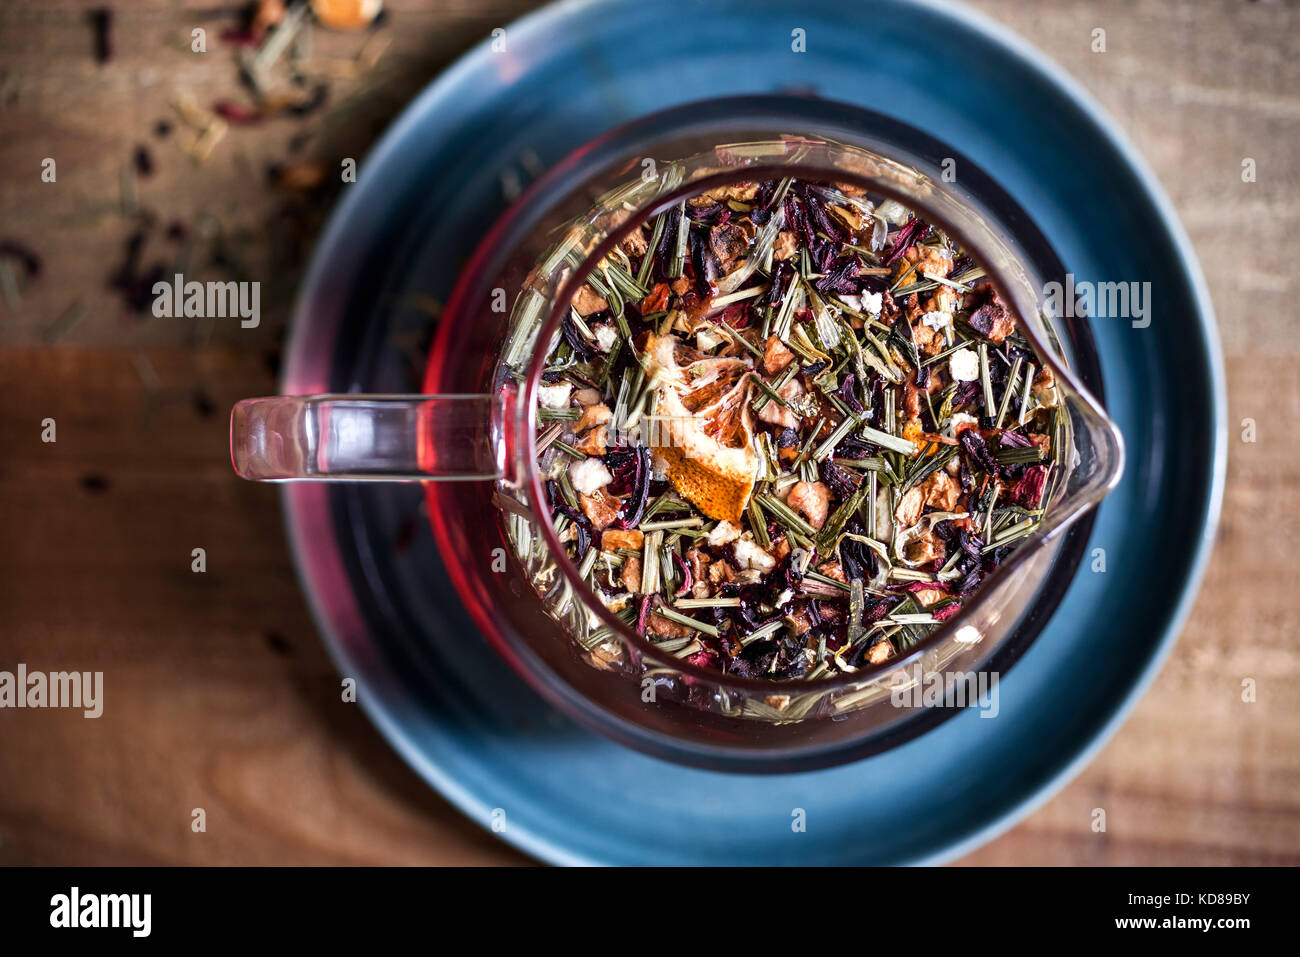 Detail shot of textured loose leaf tea floating in a glass teapot on a warm wood surface. - Stock Image